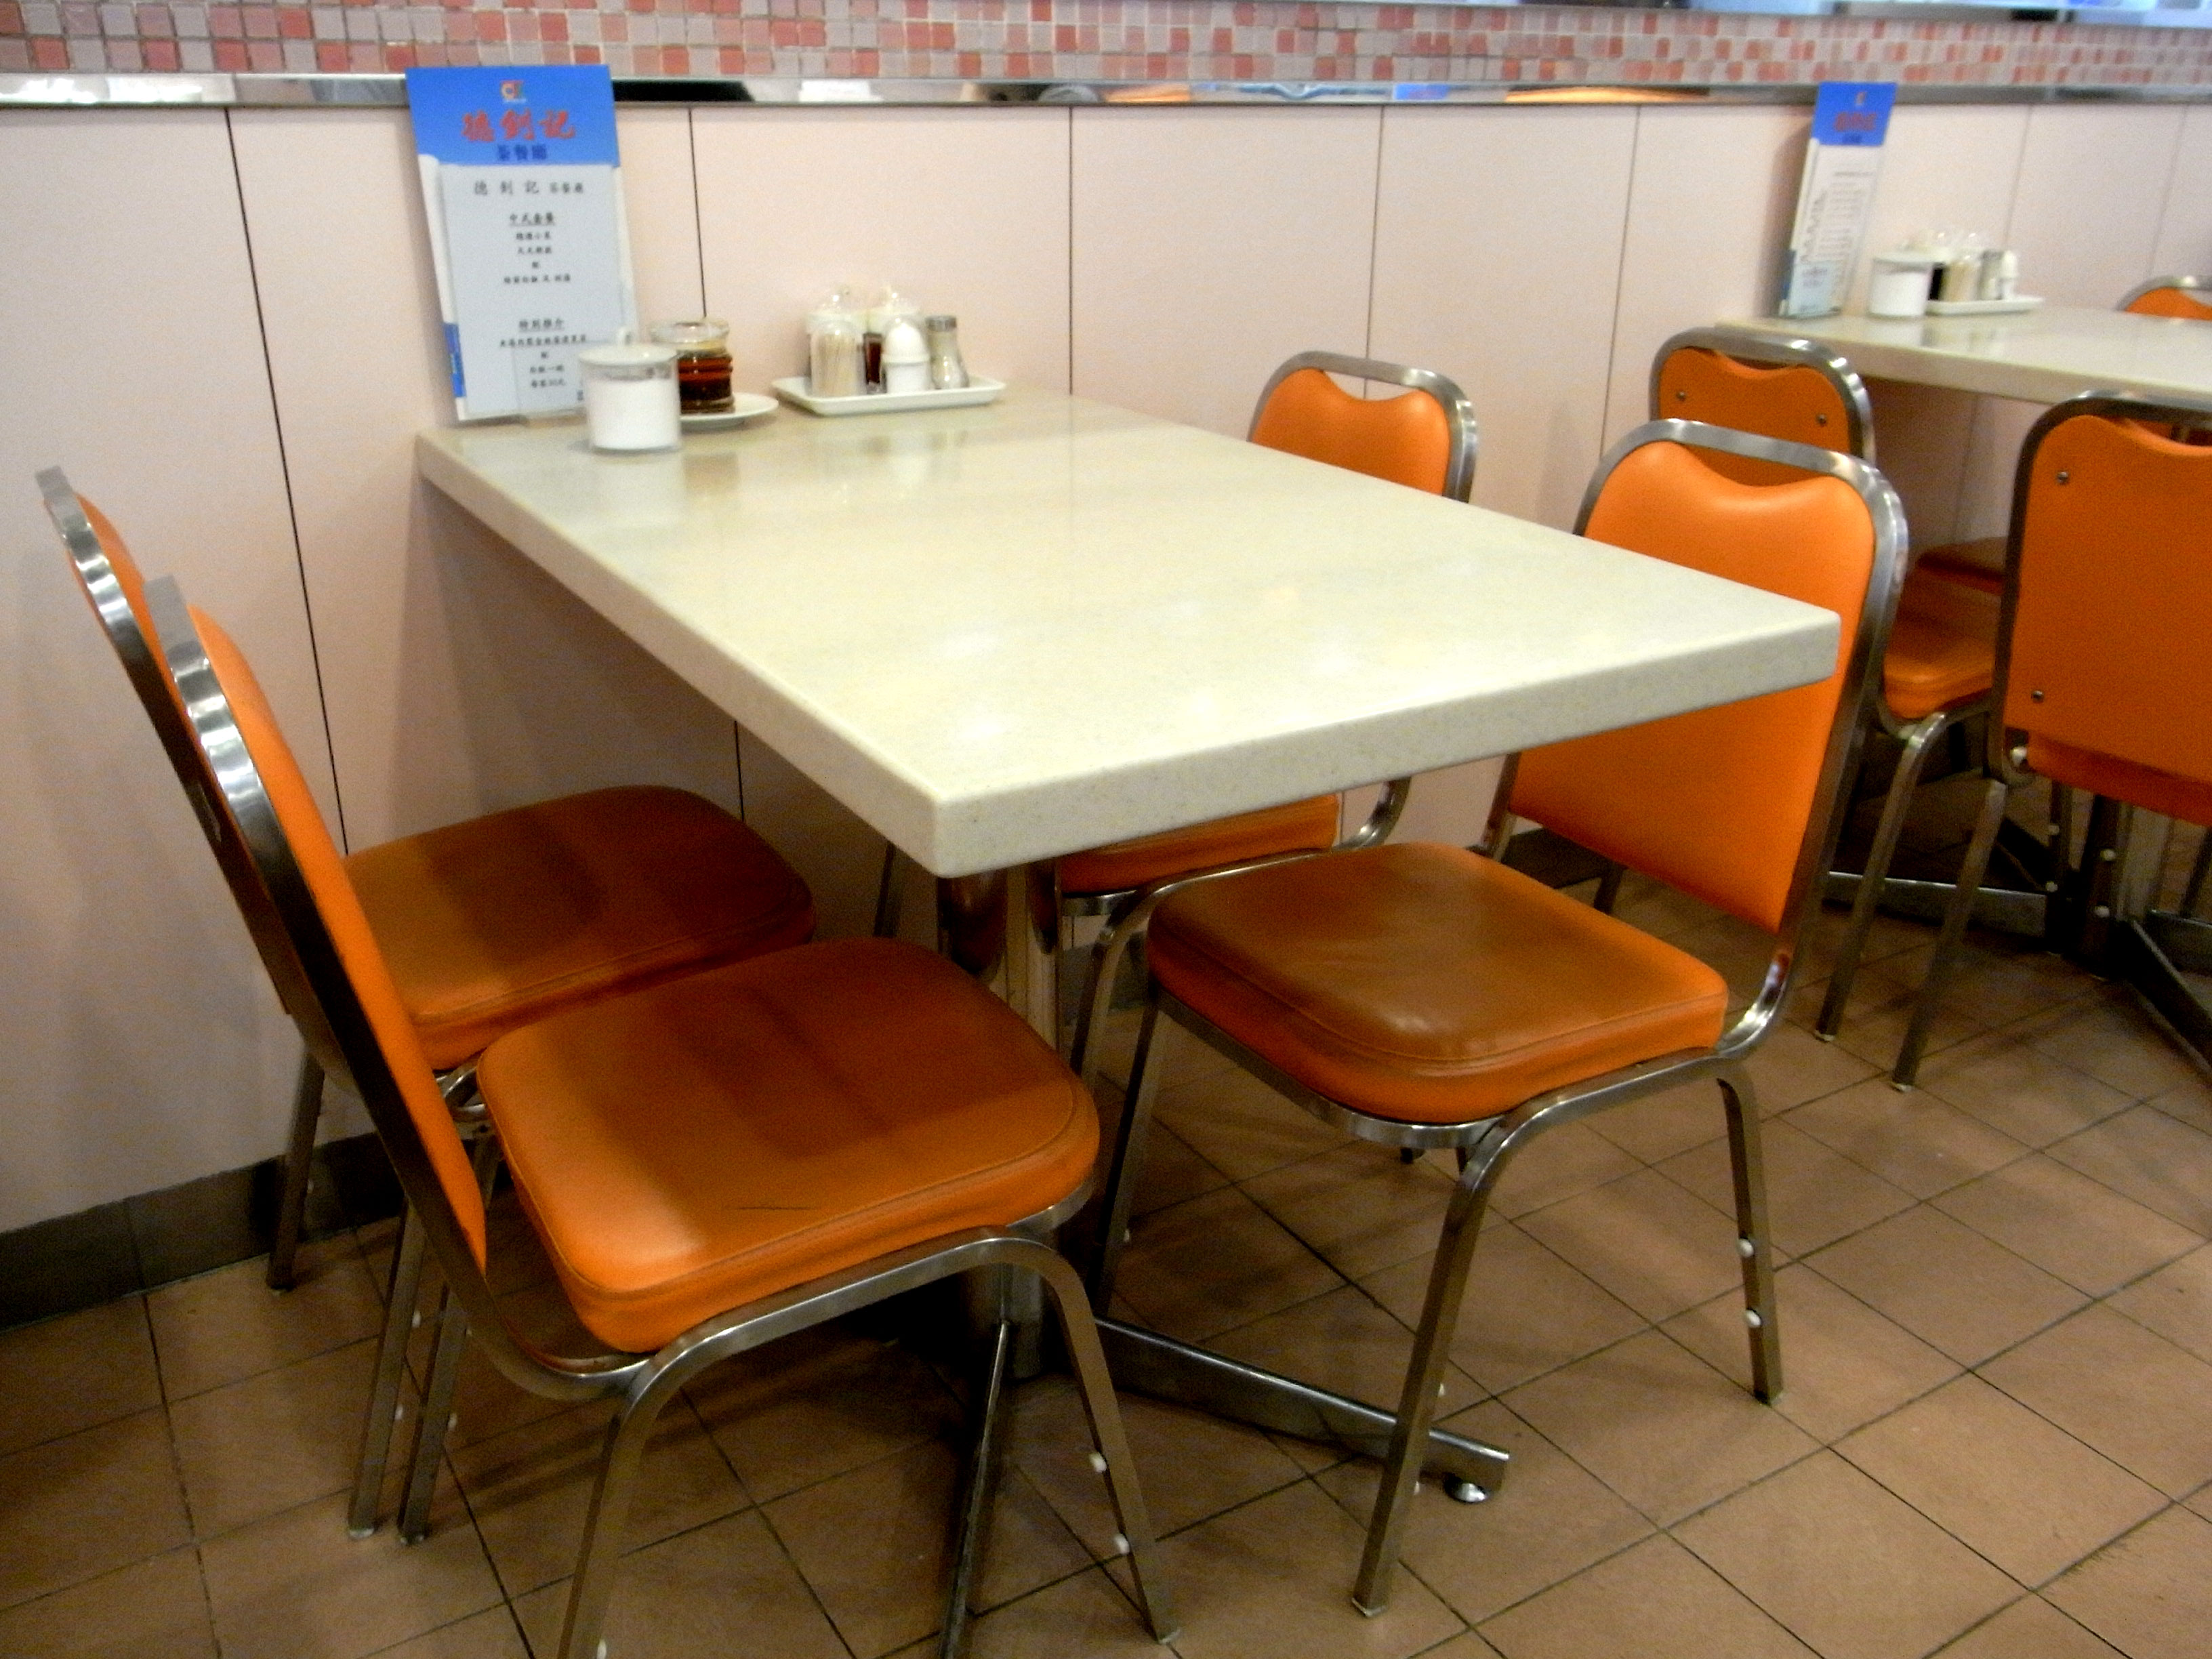 Table In Restaurant : ... tak chiu kee restaurant table restaurant table chairs